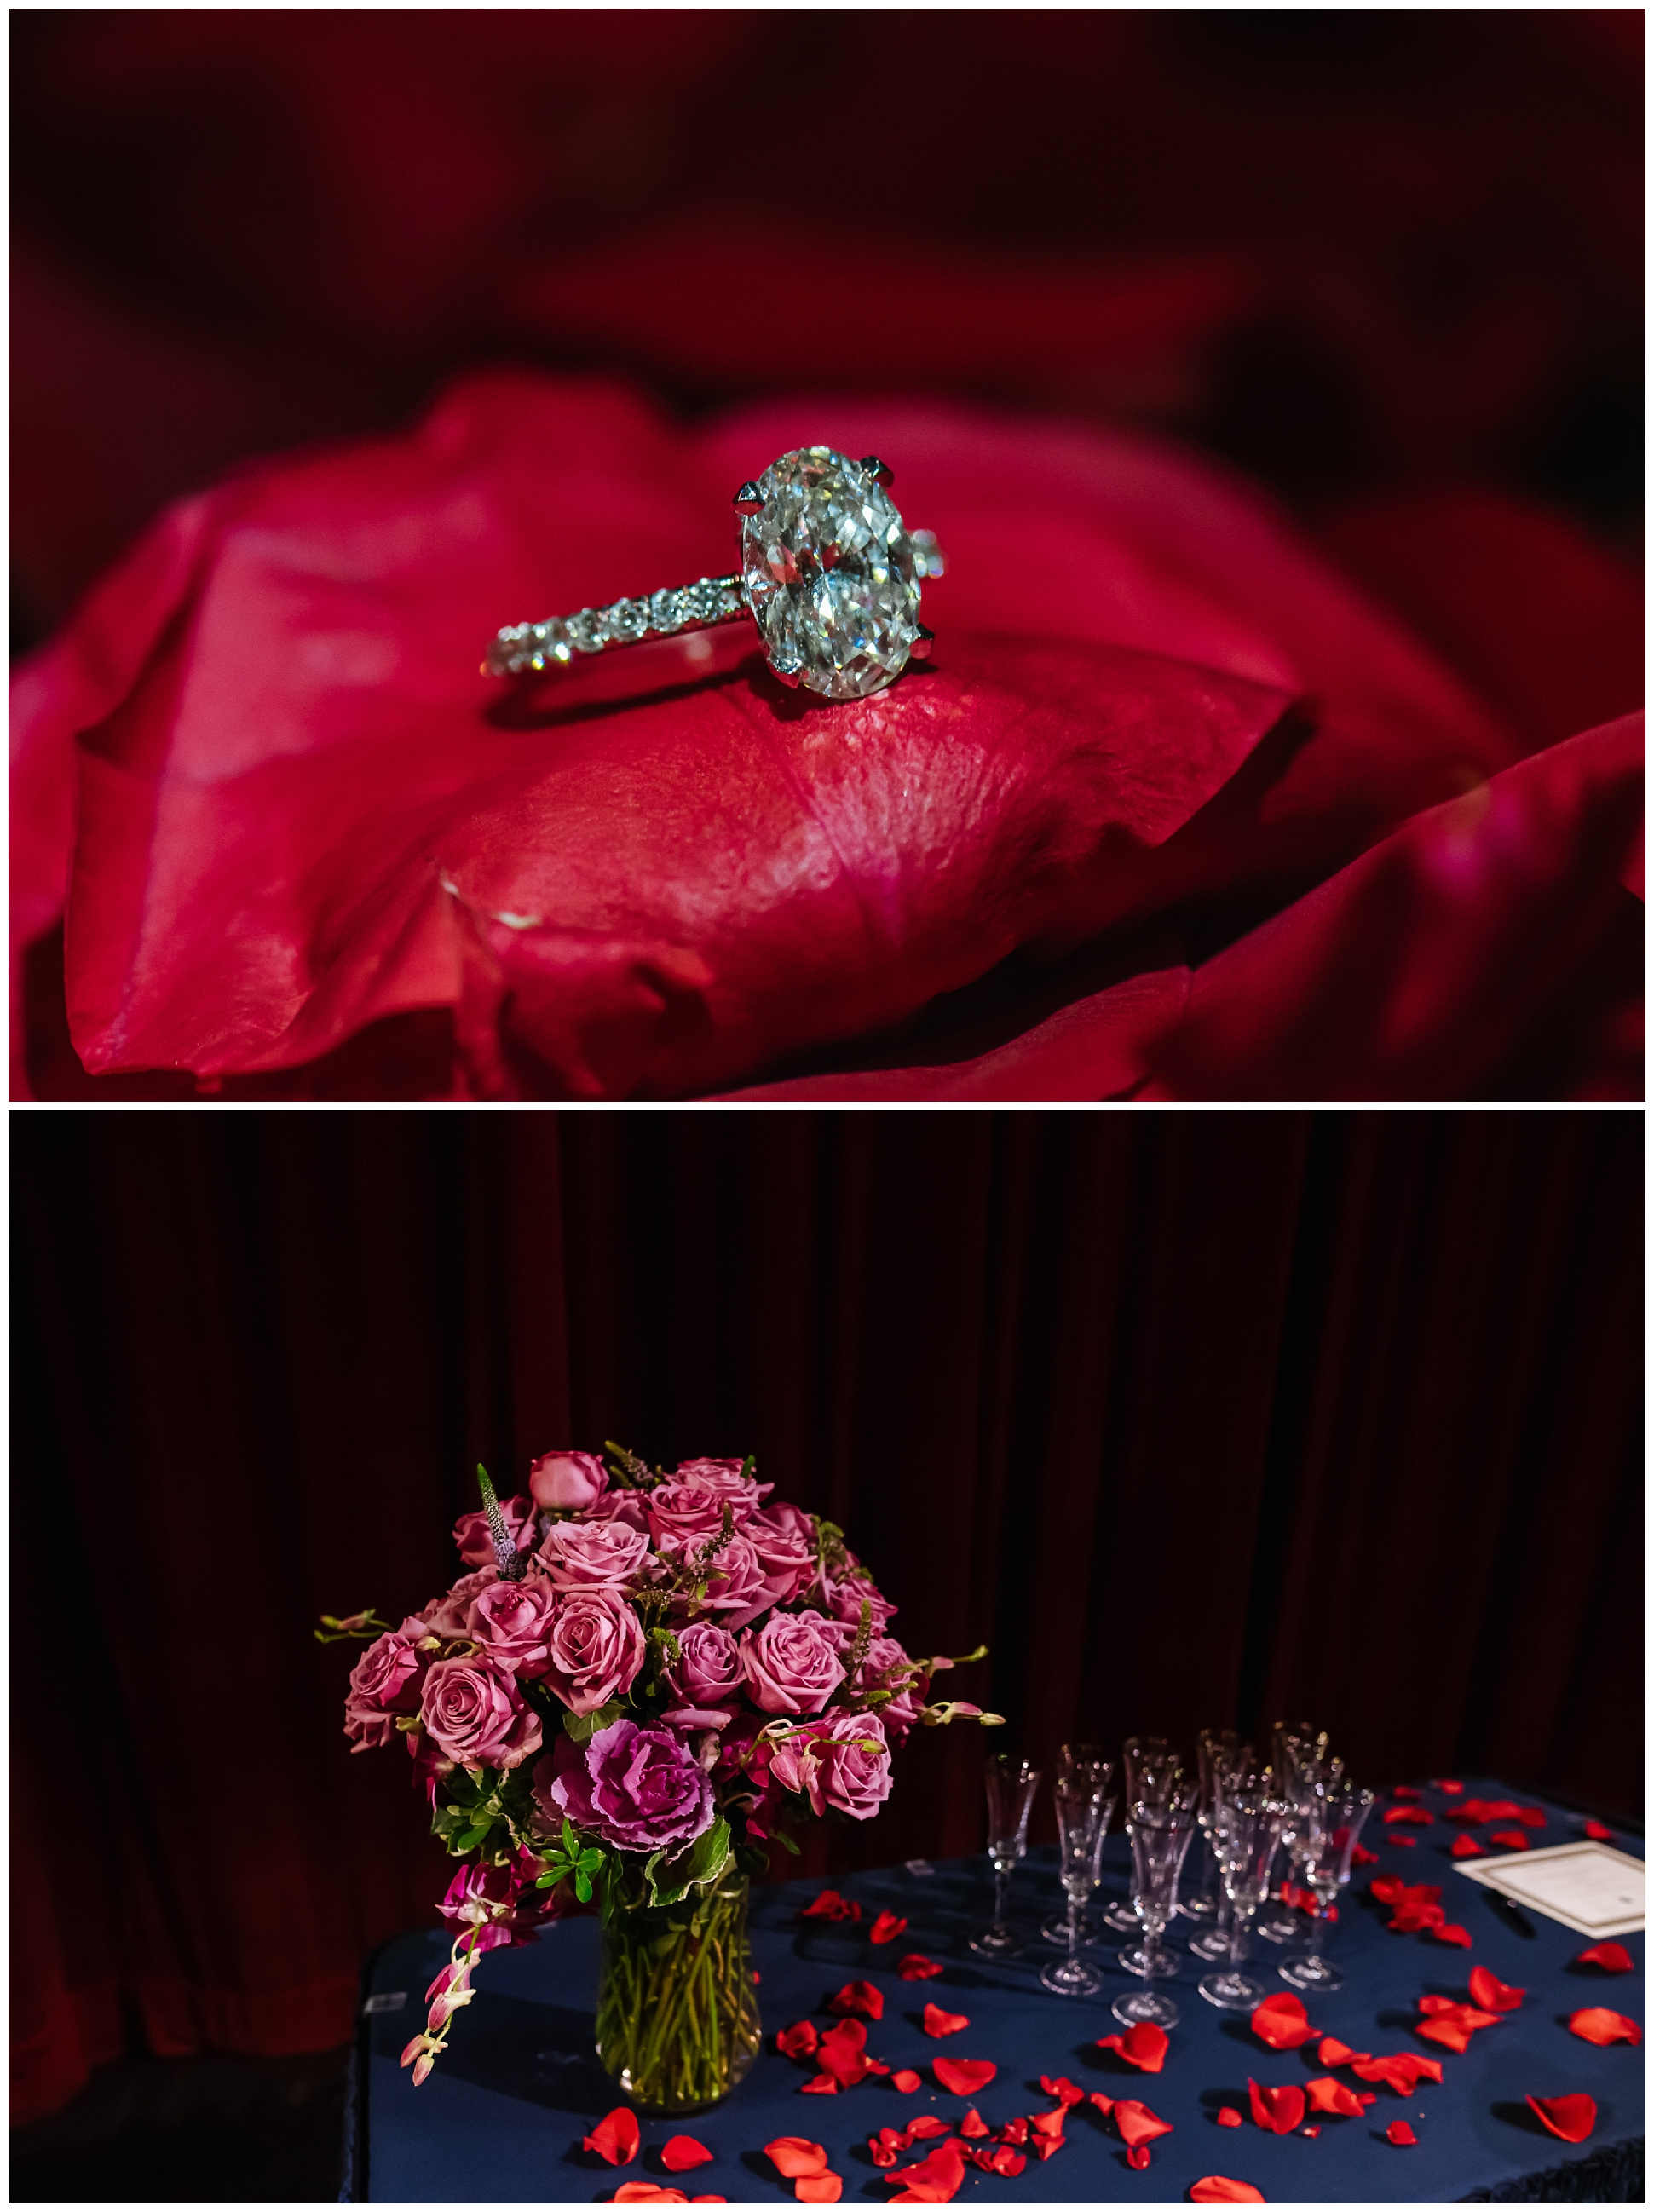 tampa-theater-romantic-surprise-proposal-red-roses-photographer_0003.jpg